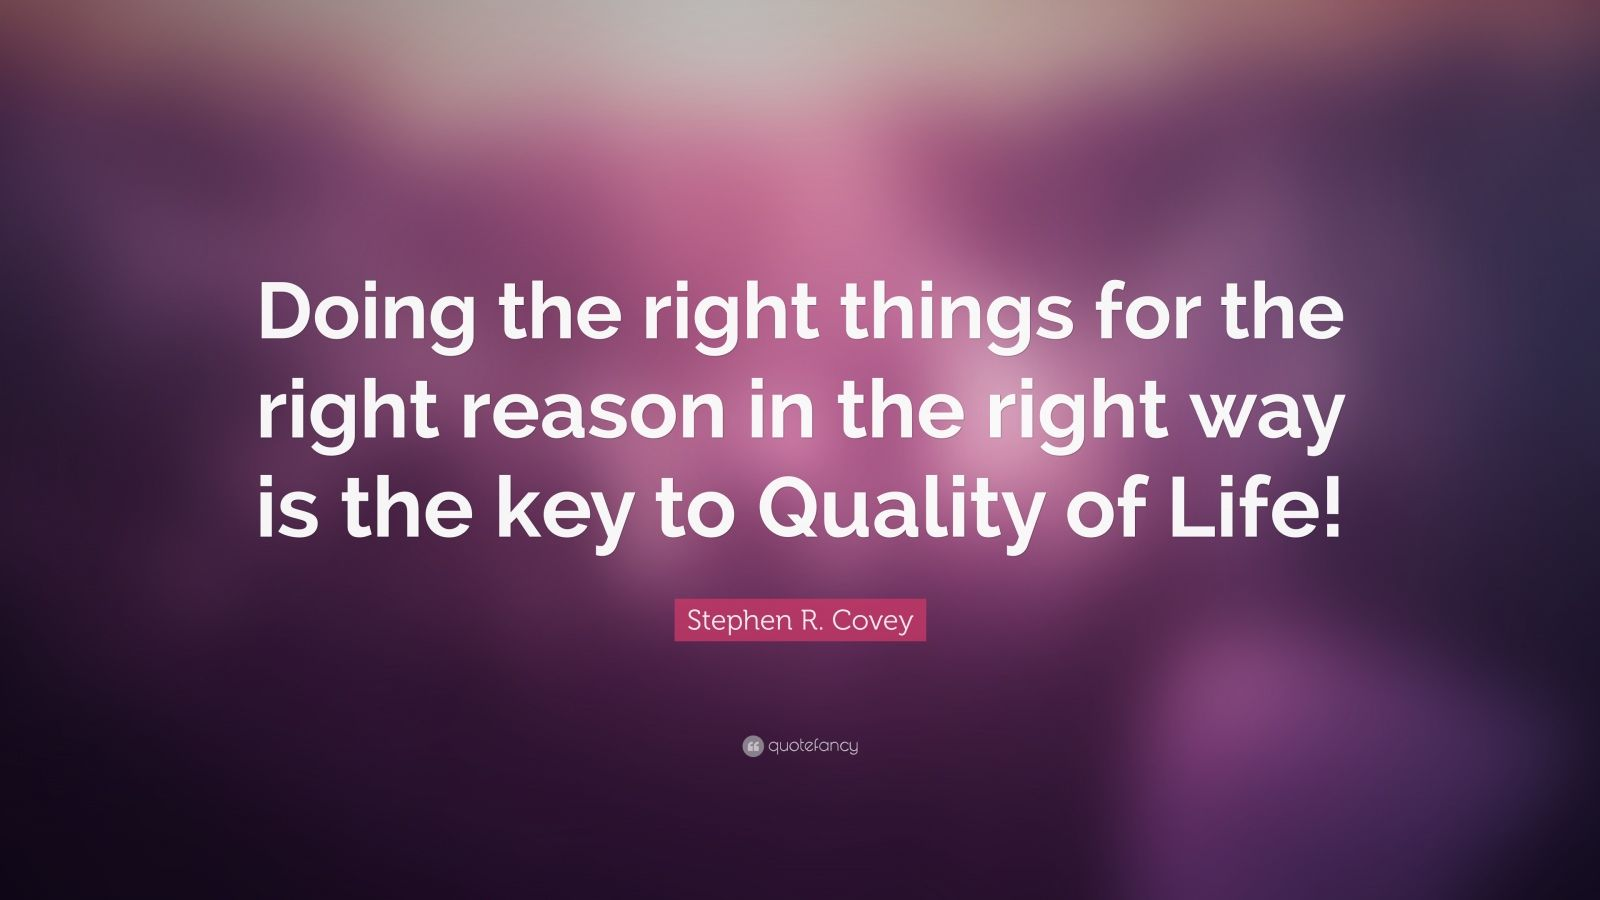 """Stephen R. Covey Quote: """"Doing the right things for the right reason in the right way is the key to Quality of Life!"""""""